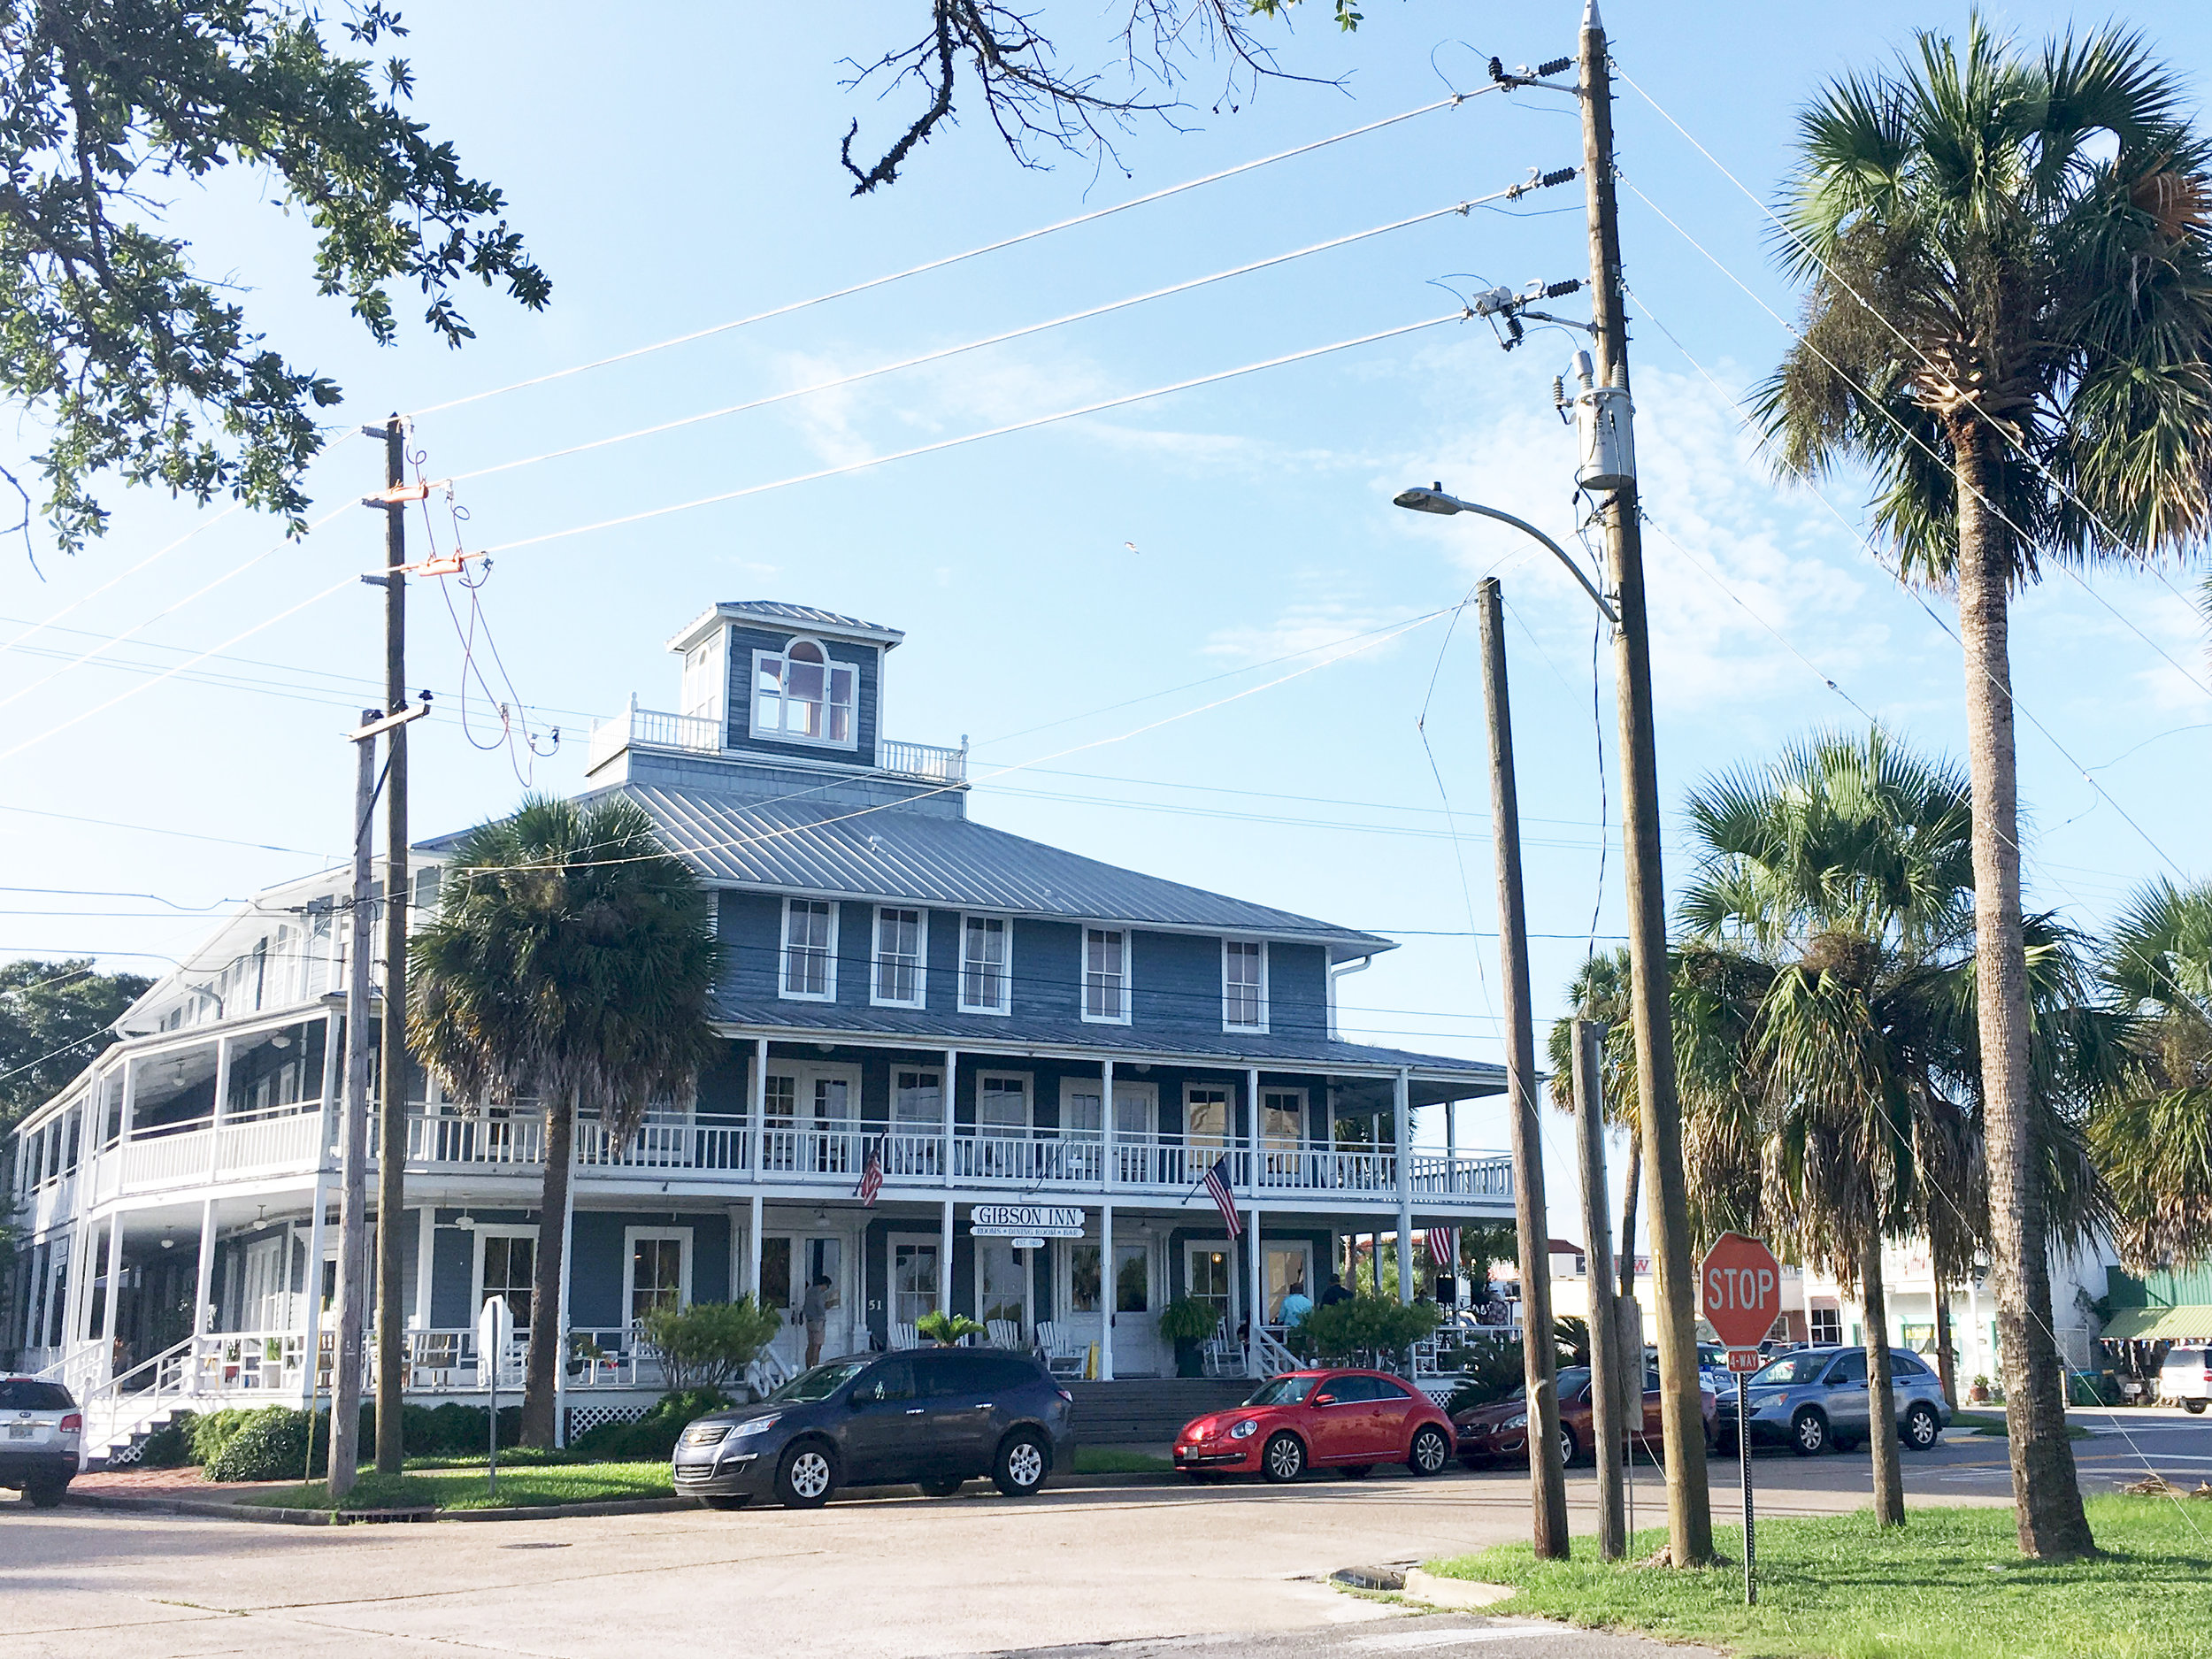 The Gibson Inn,Apalachicola, FL - The Gibson Inn is one of those iconic Apalachicola institutions. I still remember Christmas day, driving over the bridge to Apalachicola, seeing the Gibson waiting there at the base of the bridge, and knowing that my grandparents' house (and Christmas presents) was only a few minutes away. I'm pretty sure that I also had my first club sandwich during one Sunday afternoon lunch with my Grandmother. Now I love coming to see the classic old bar in the lobby, and sitting in a rocking chair on the front porch, watching the world go by.